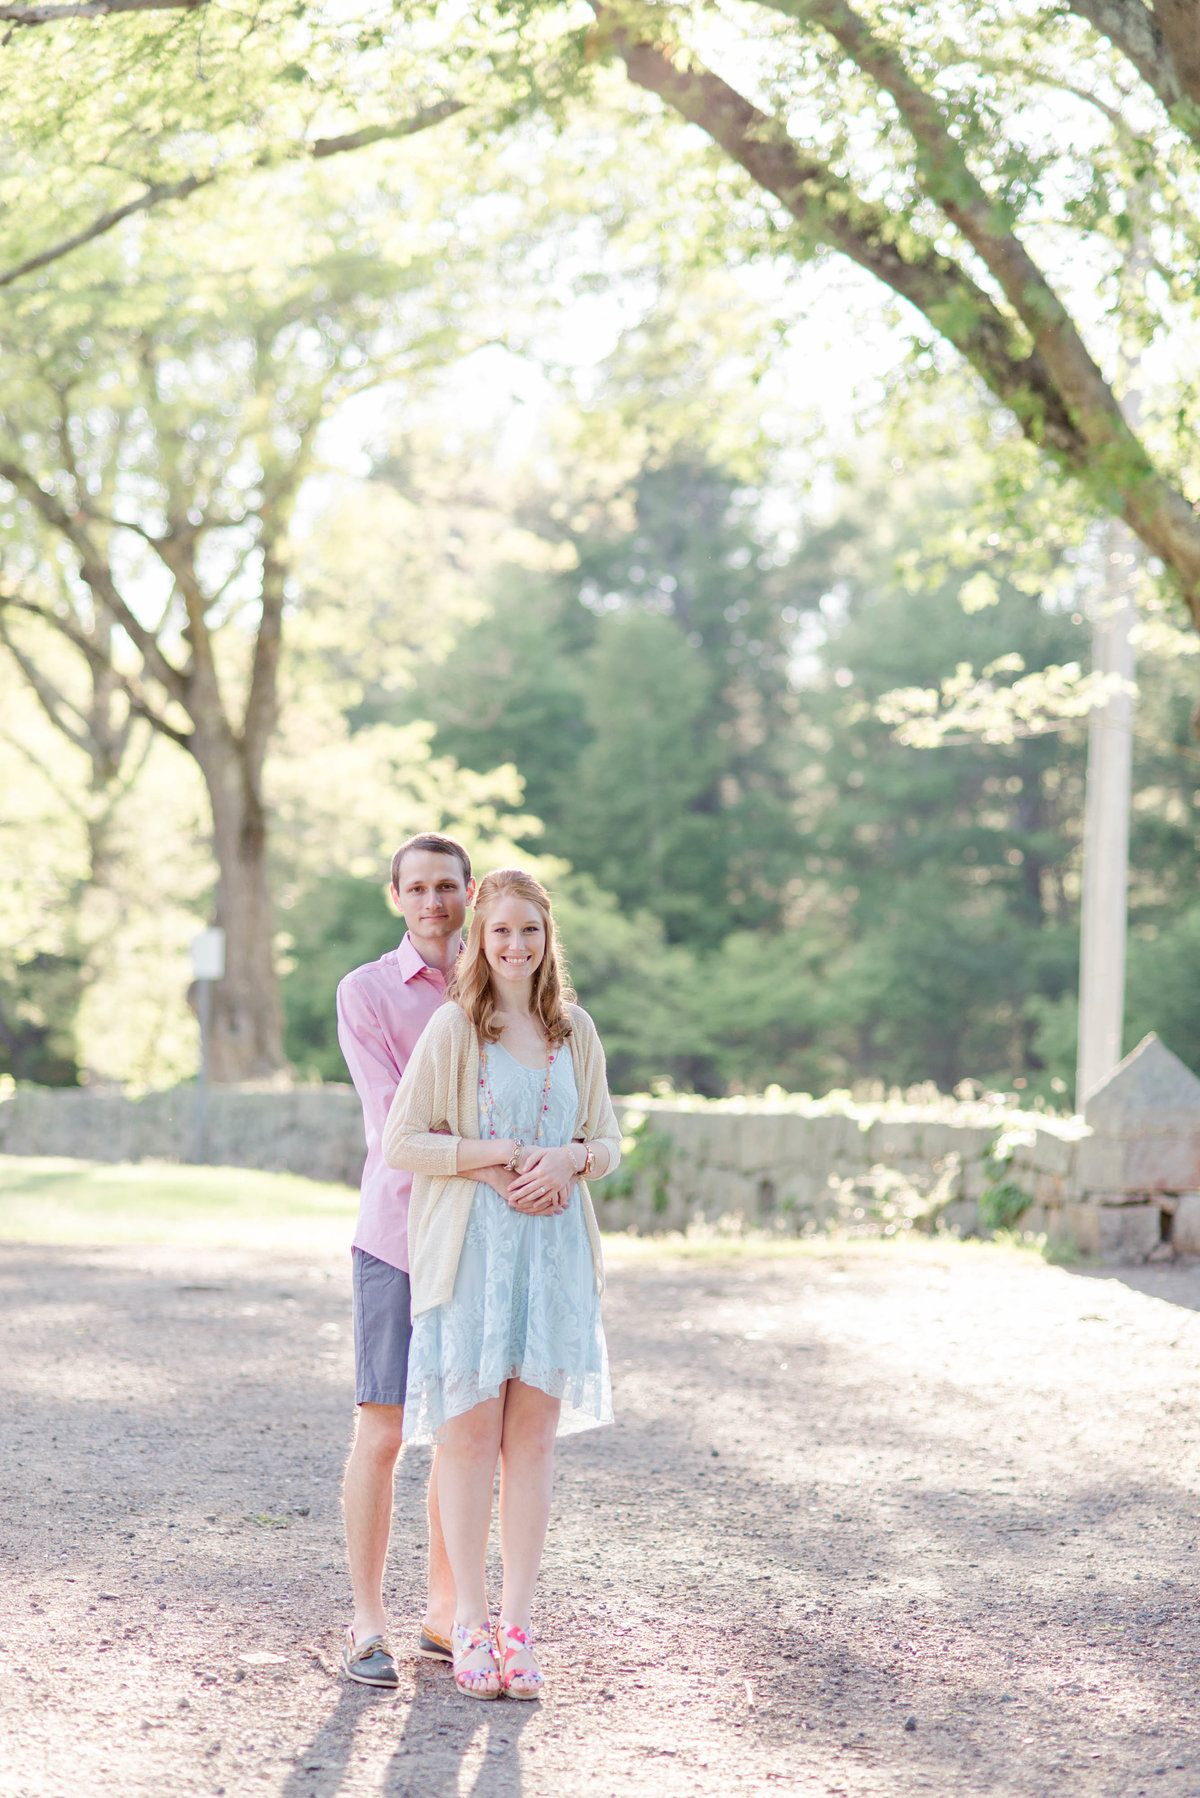 Maudslay state park summer engagement session by Linda Barry Photography.